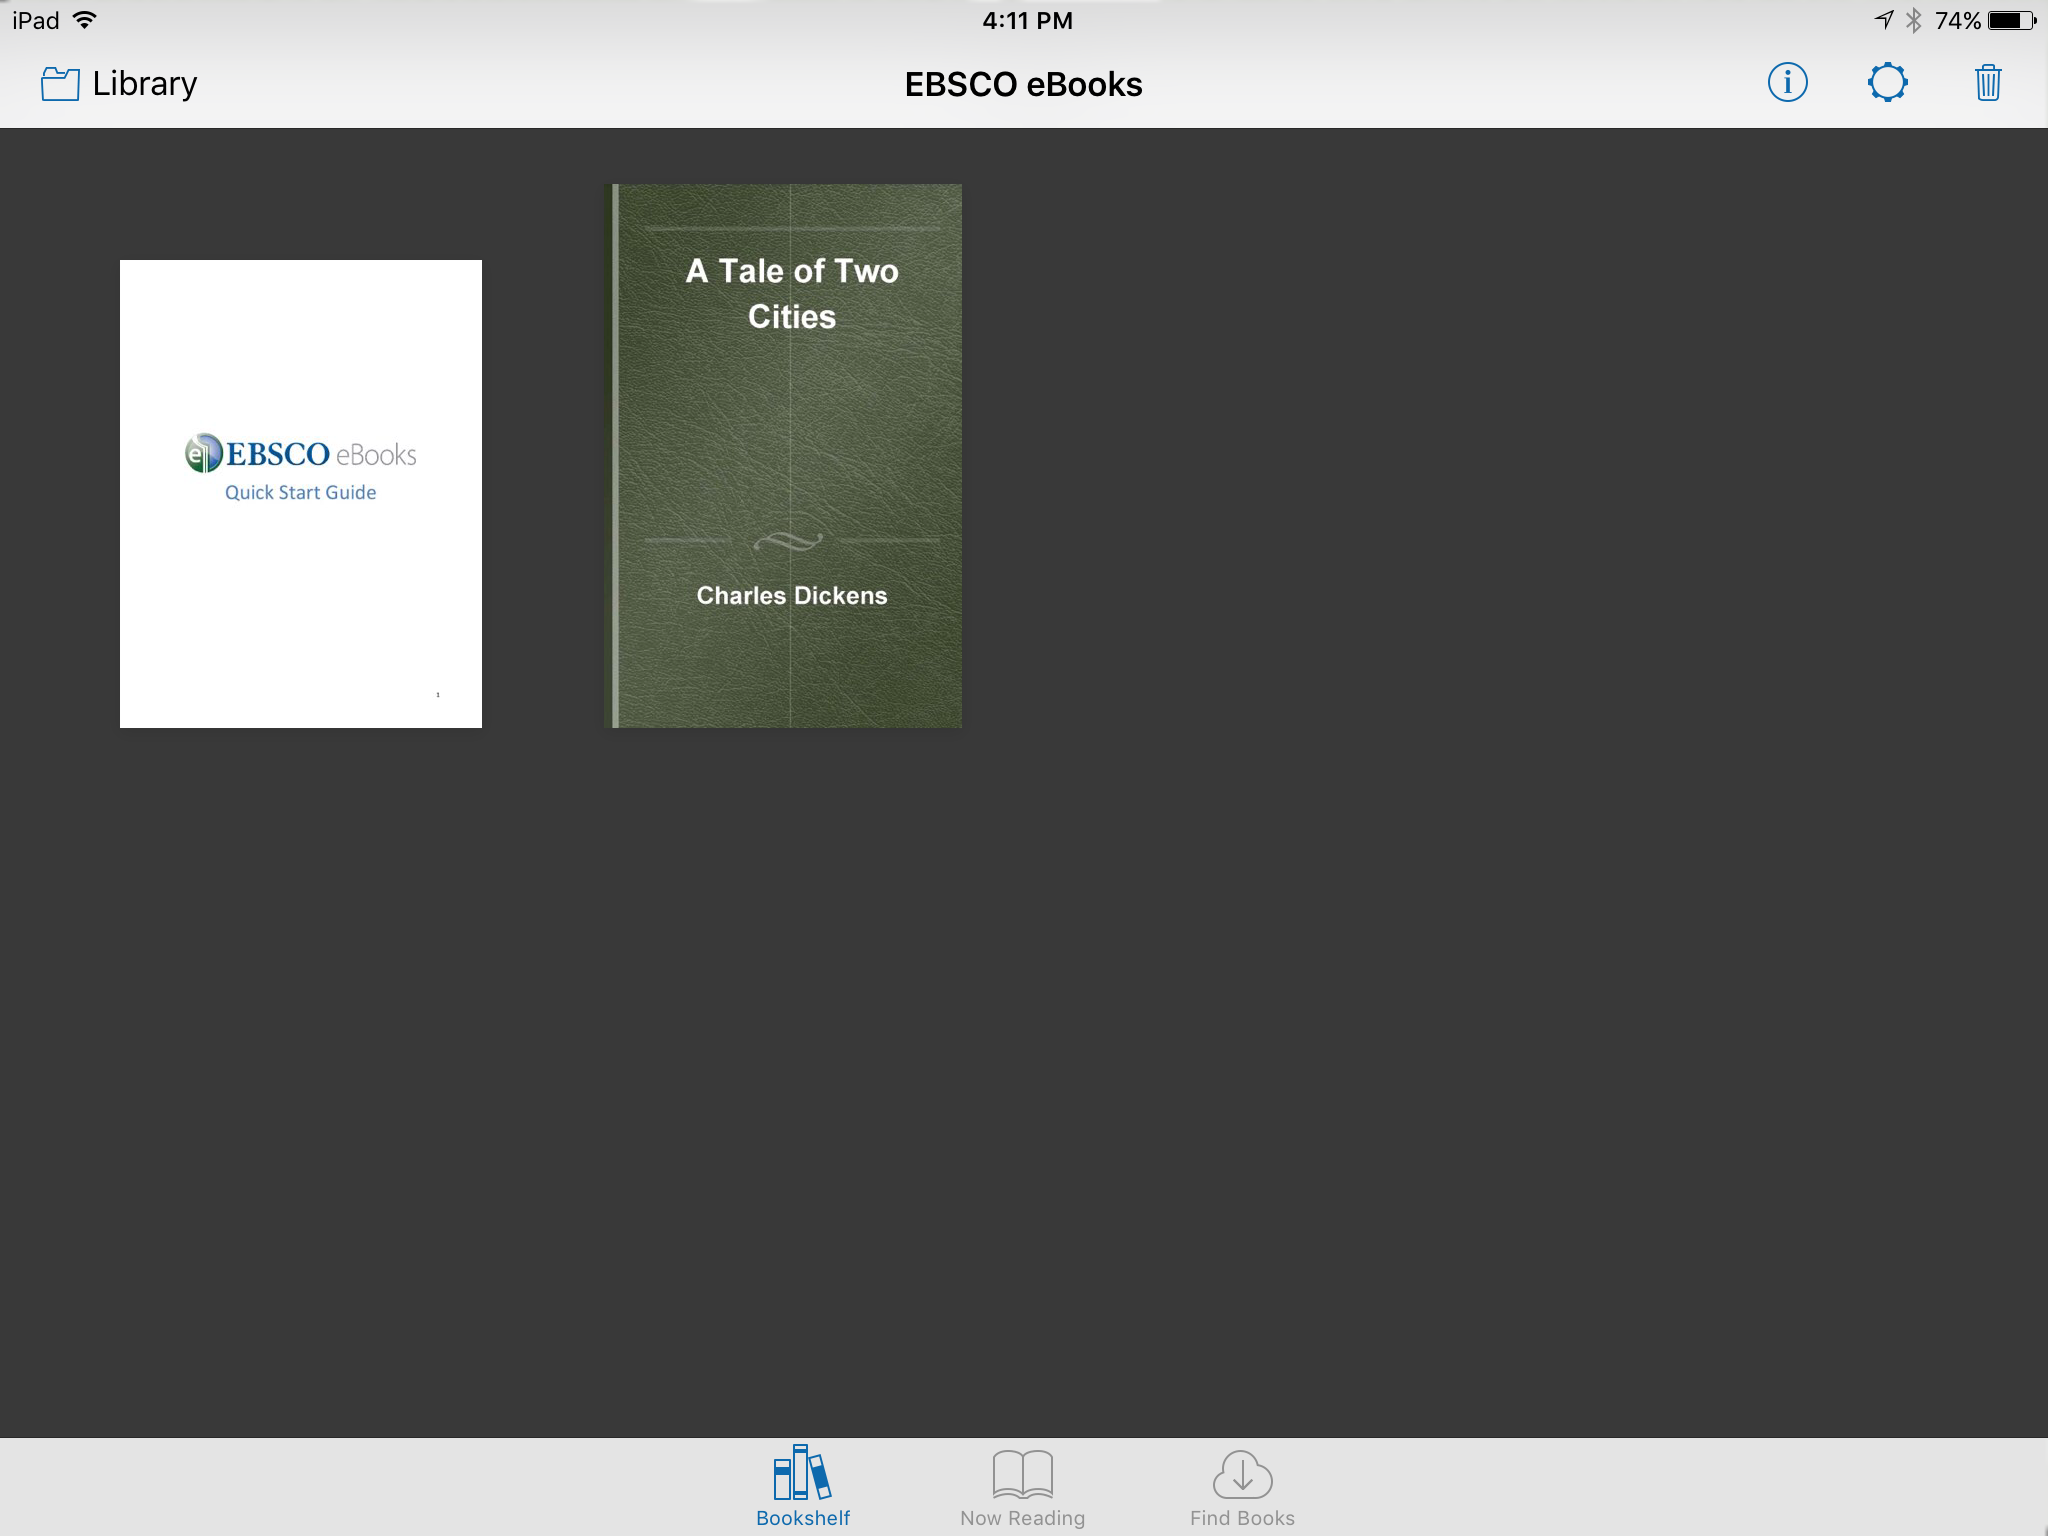 iPad screen shot - EBSCO ebooks bookshelf